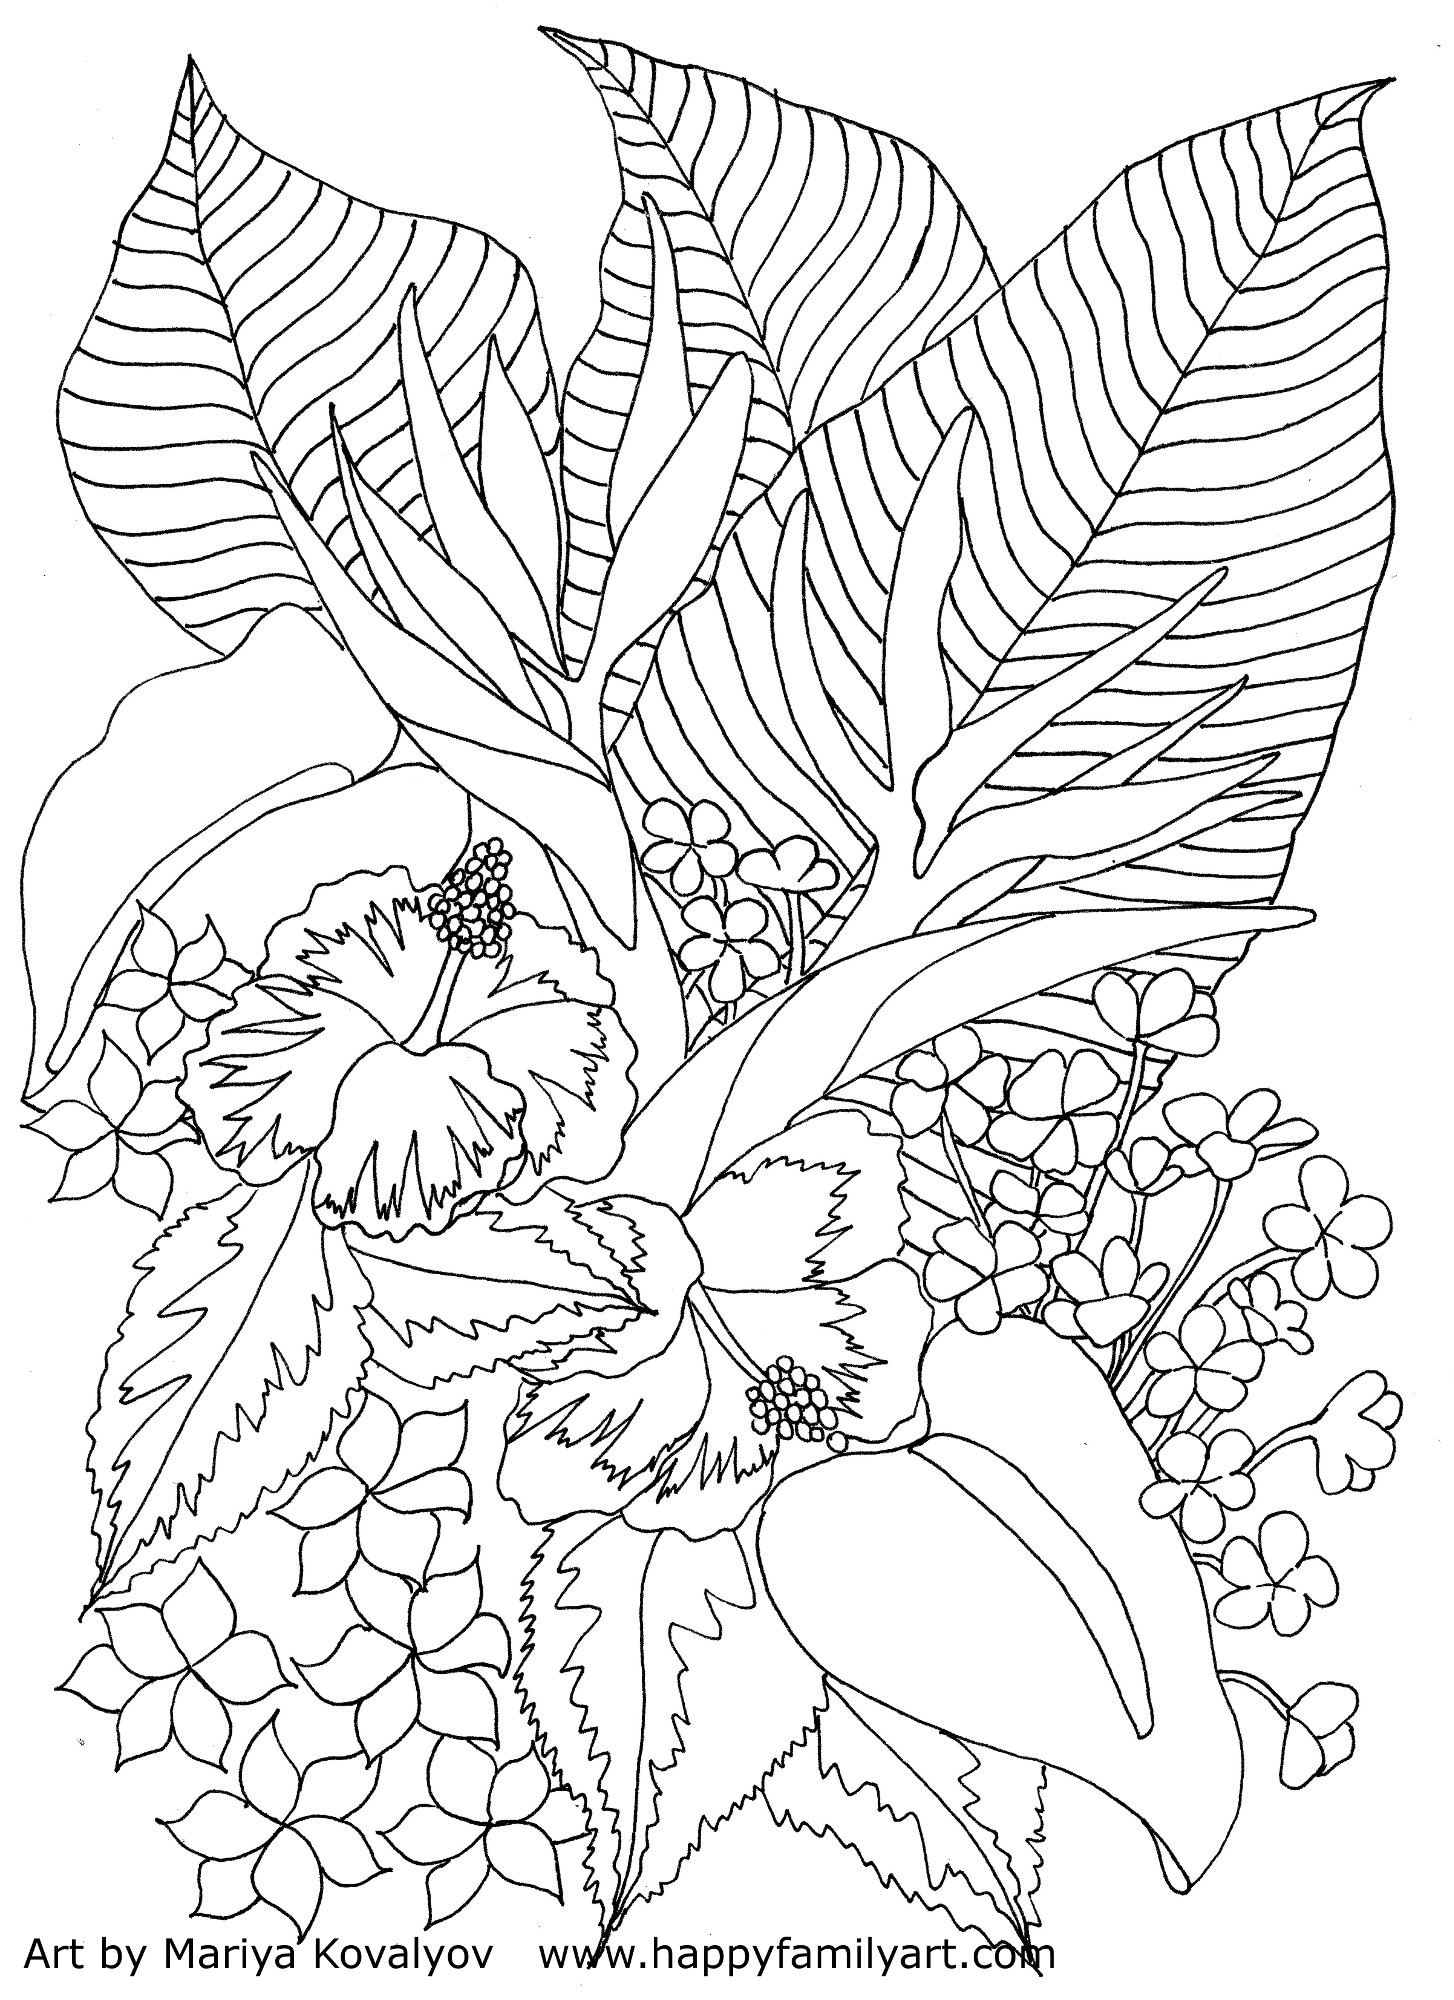 Tropical Coloring Pages - Happy Family Art original and Fun Coloring Pages